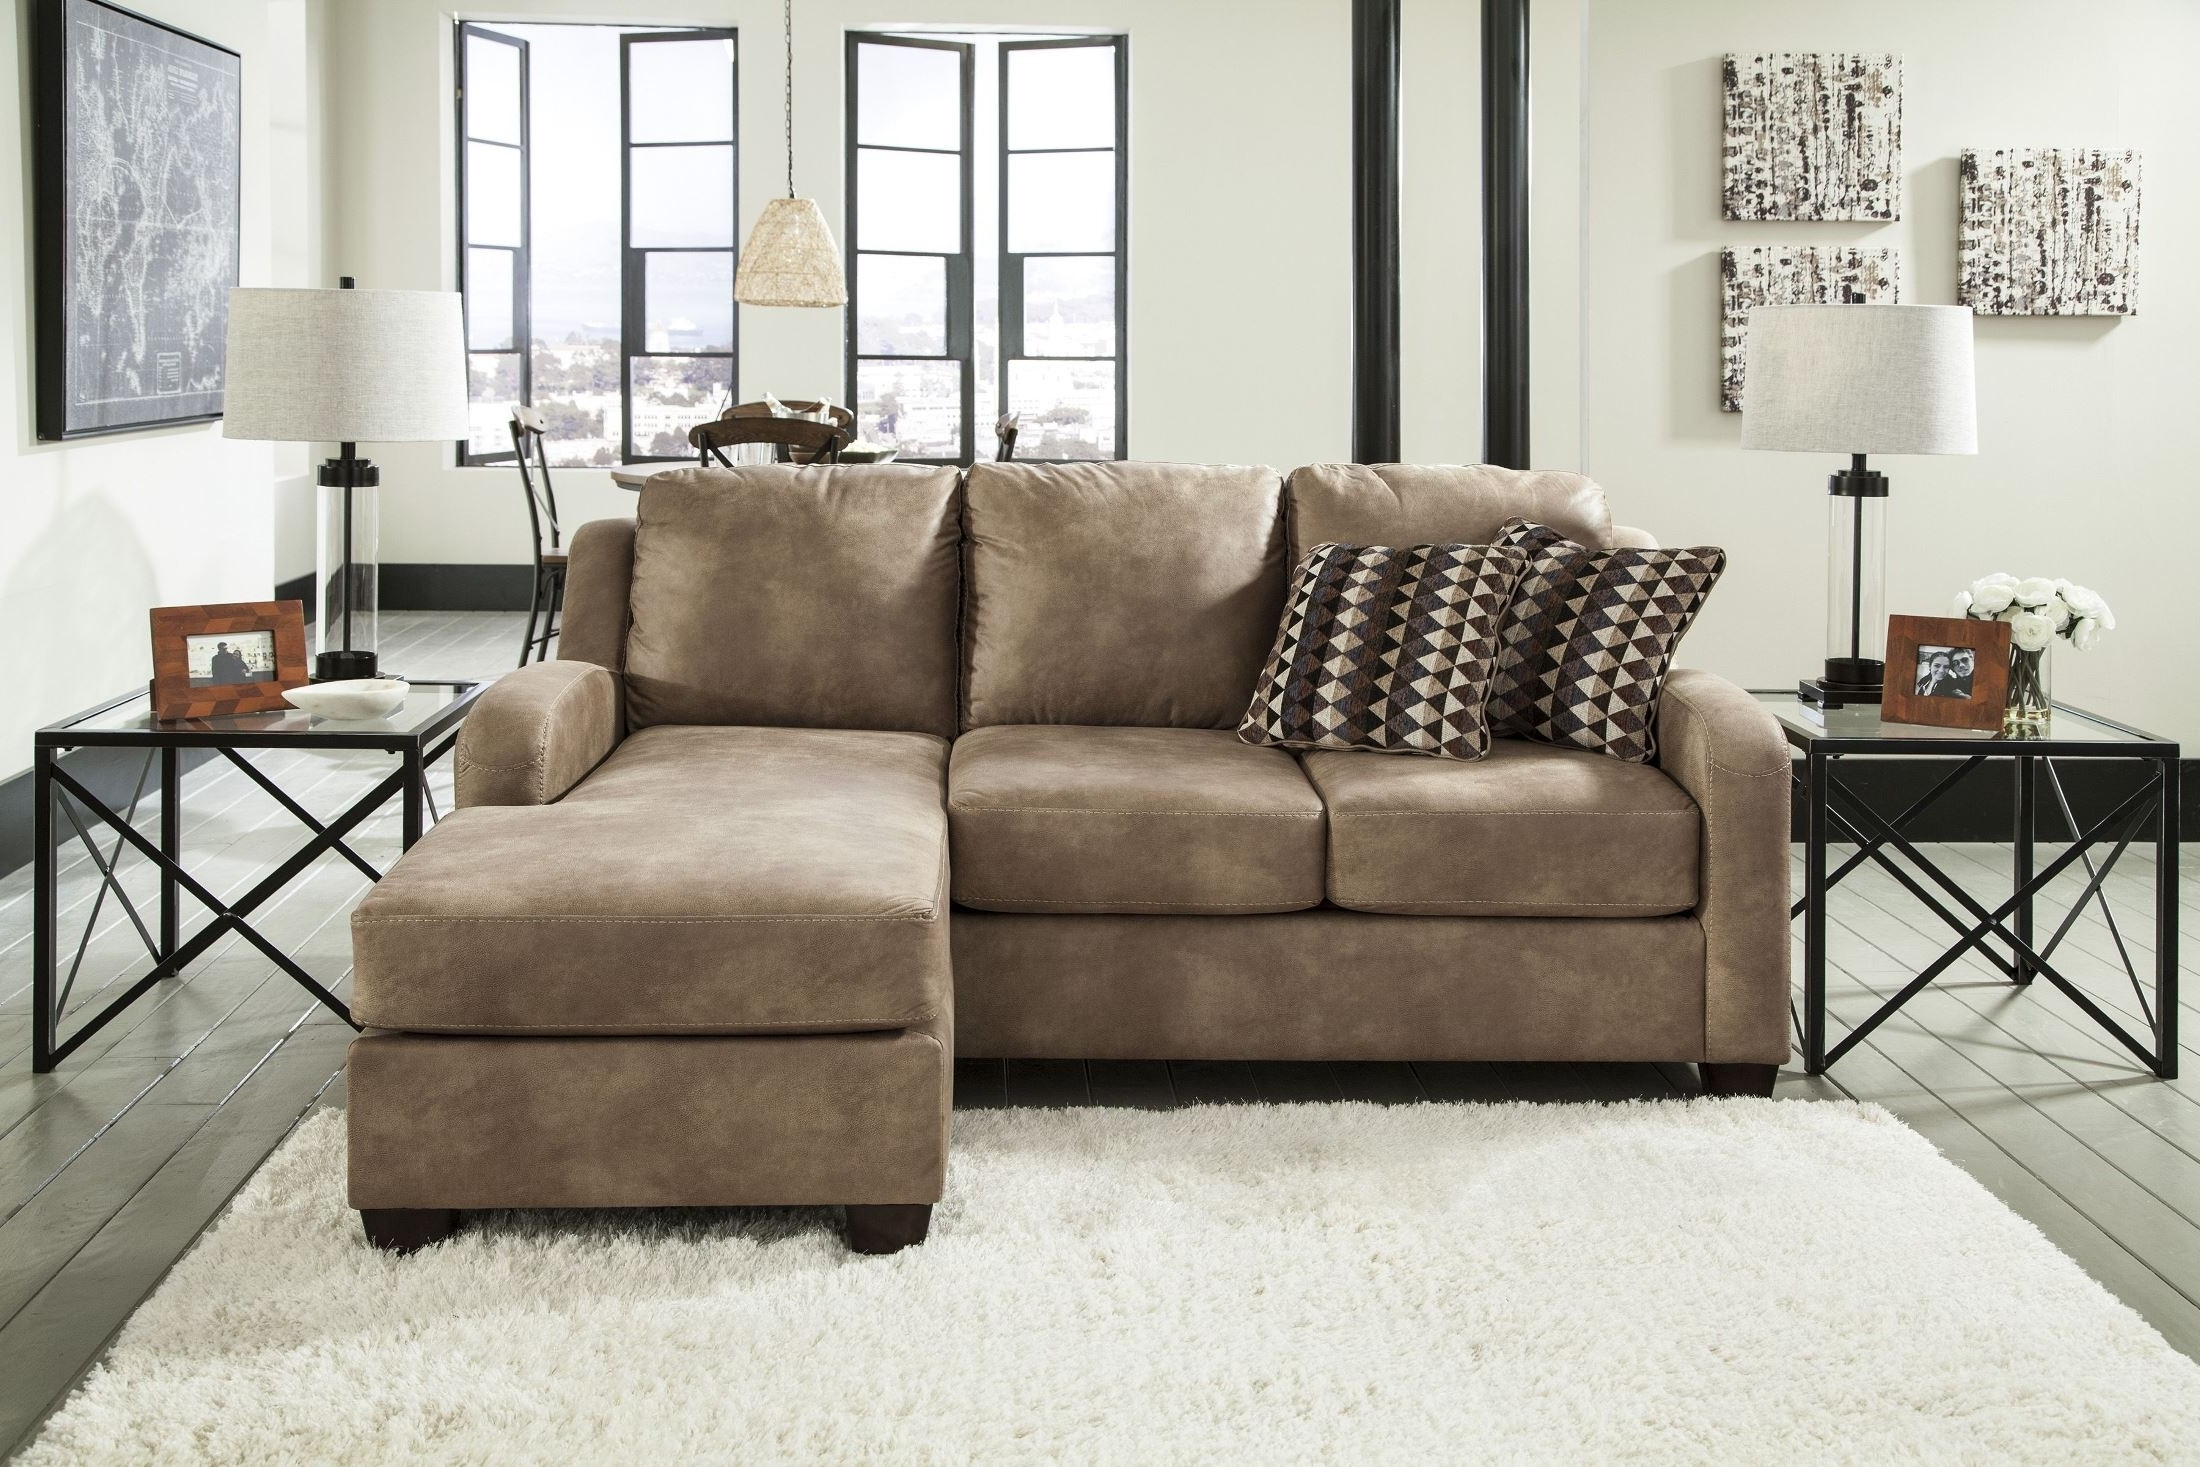 Ashley Furniture Chaise Sofas Throughout Most Popular Shayla Sofa Chaise  Ashley Furniture Homestore Inside Remodel 11